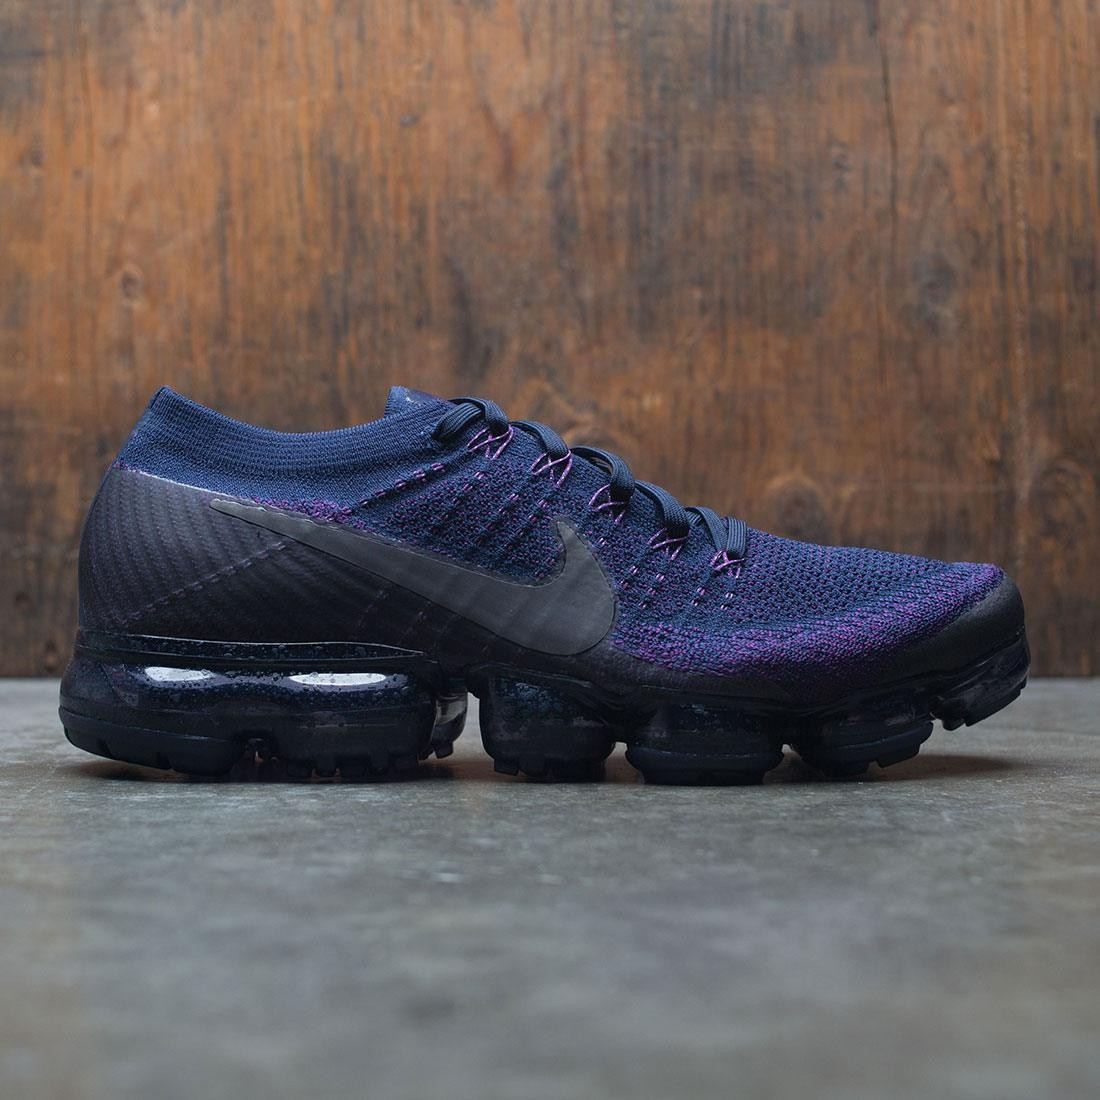 nike men nikelab air vapormax flyknit running navy dark grey night purple 81bb074da